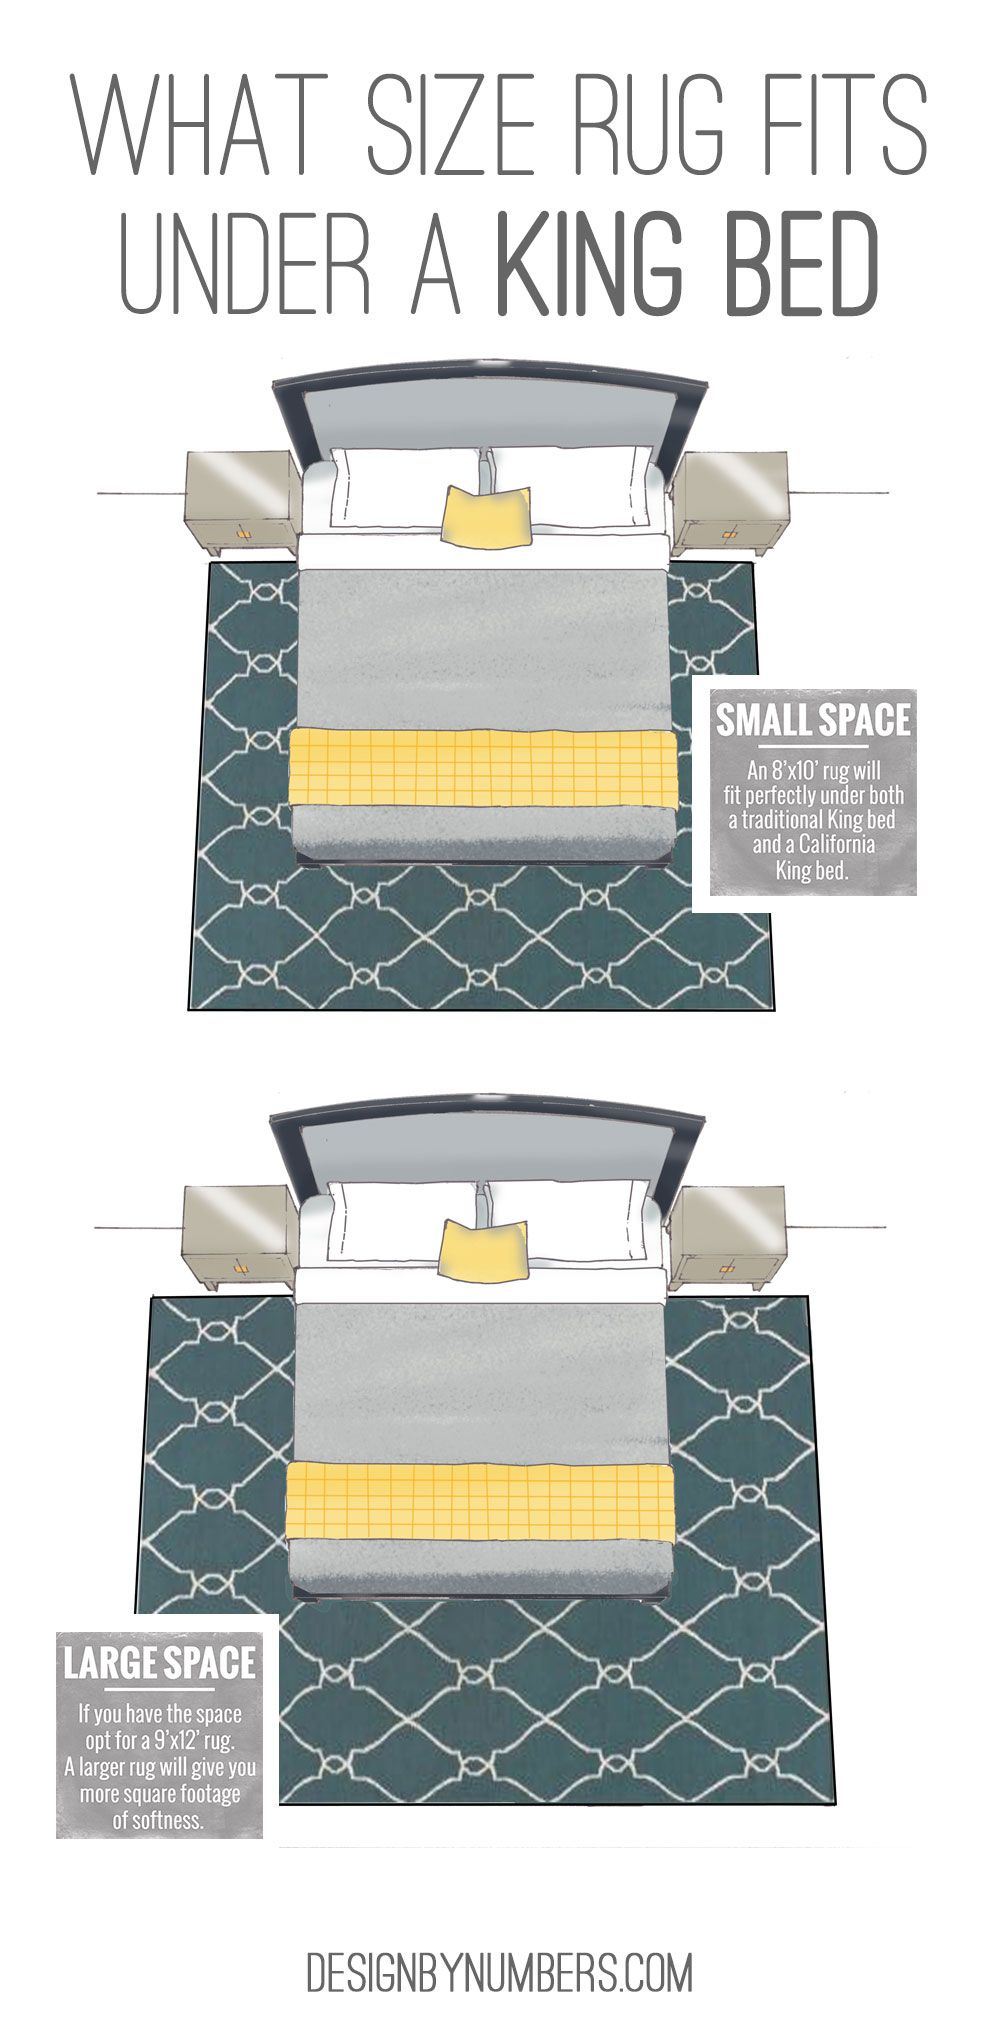 What size rug fits under a king bed design by numbers for What size rug for 12x12 room